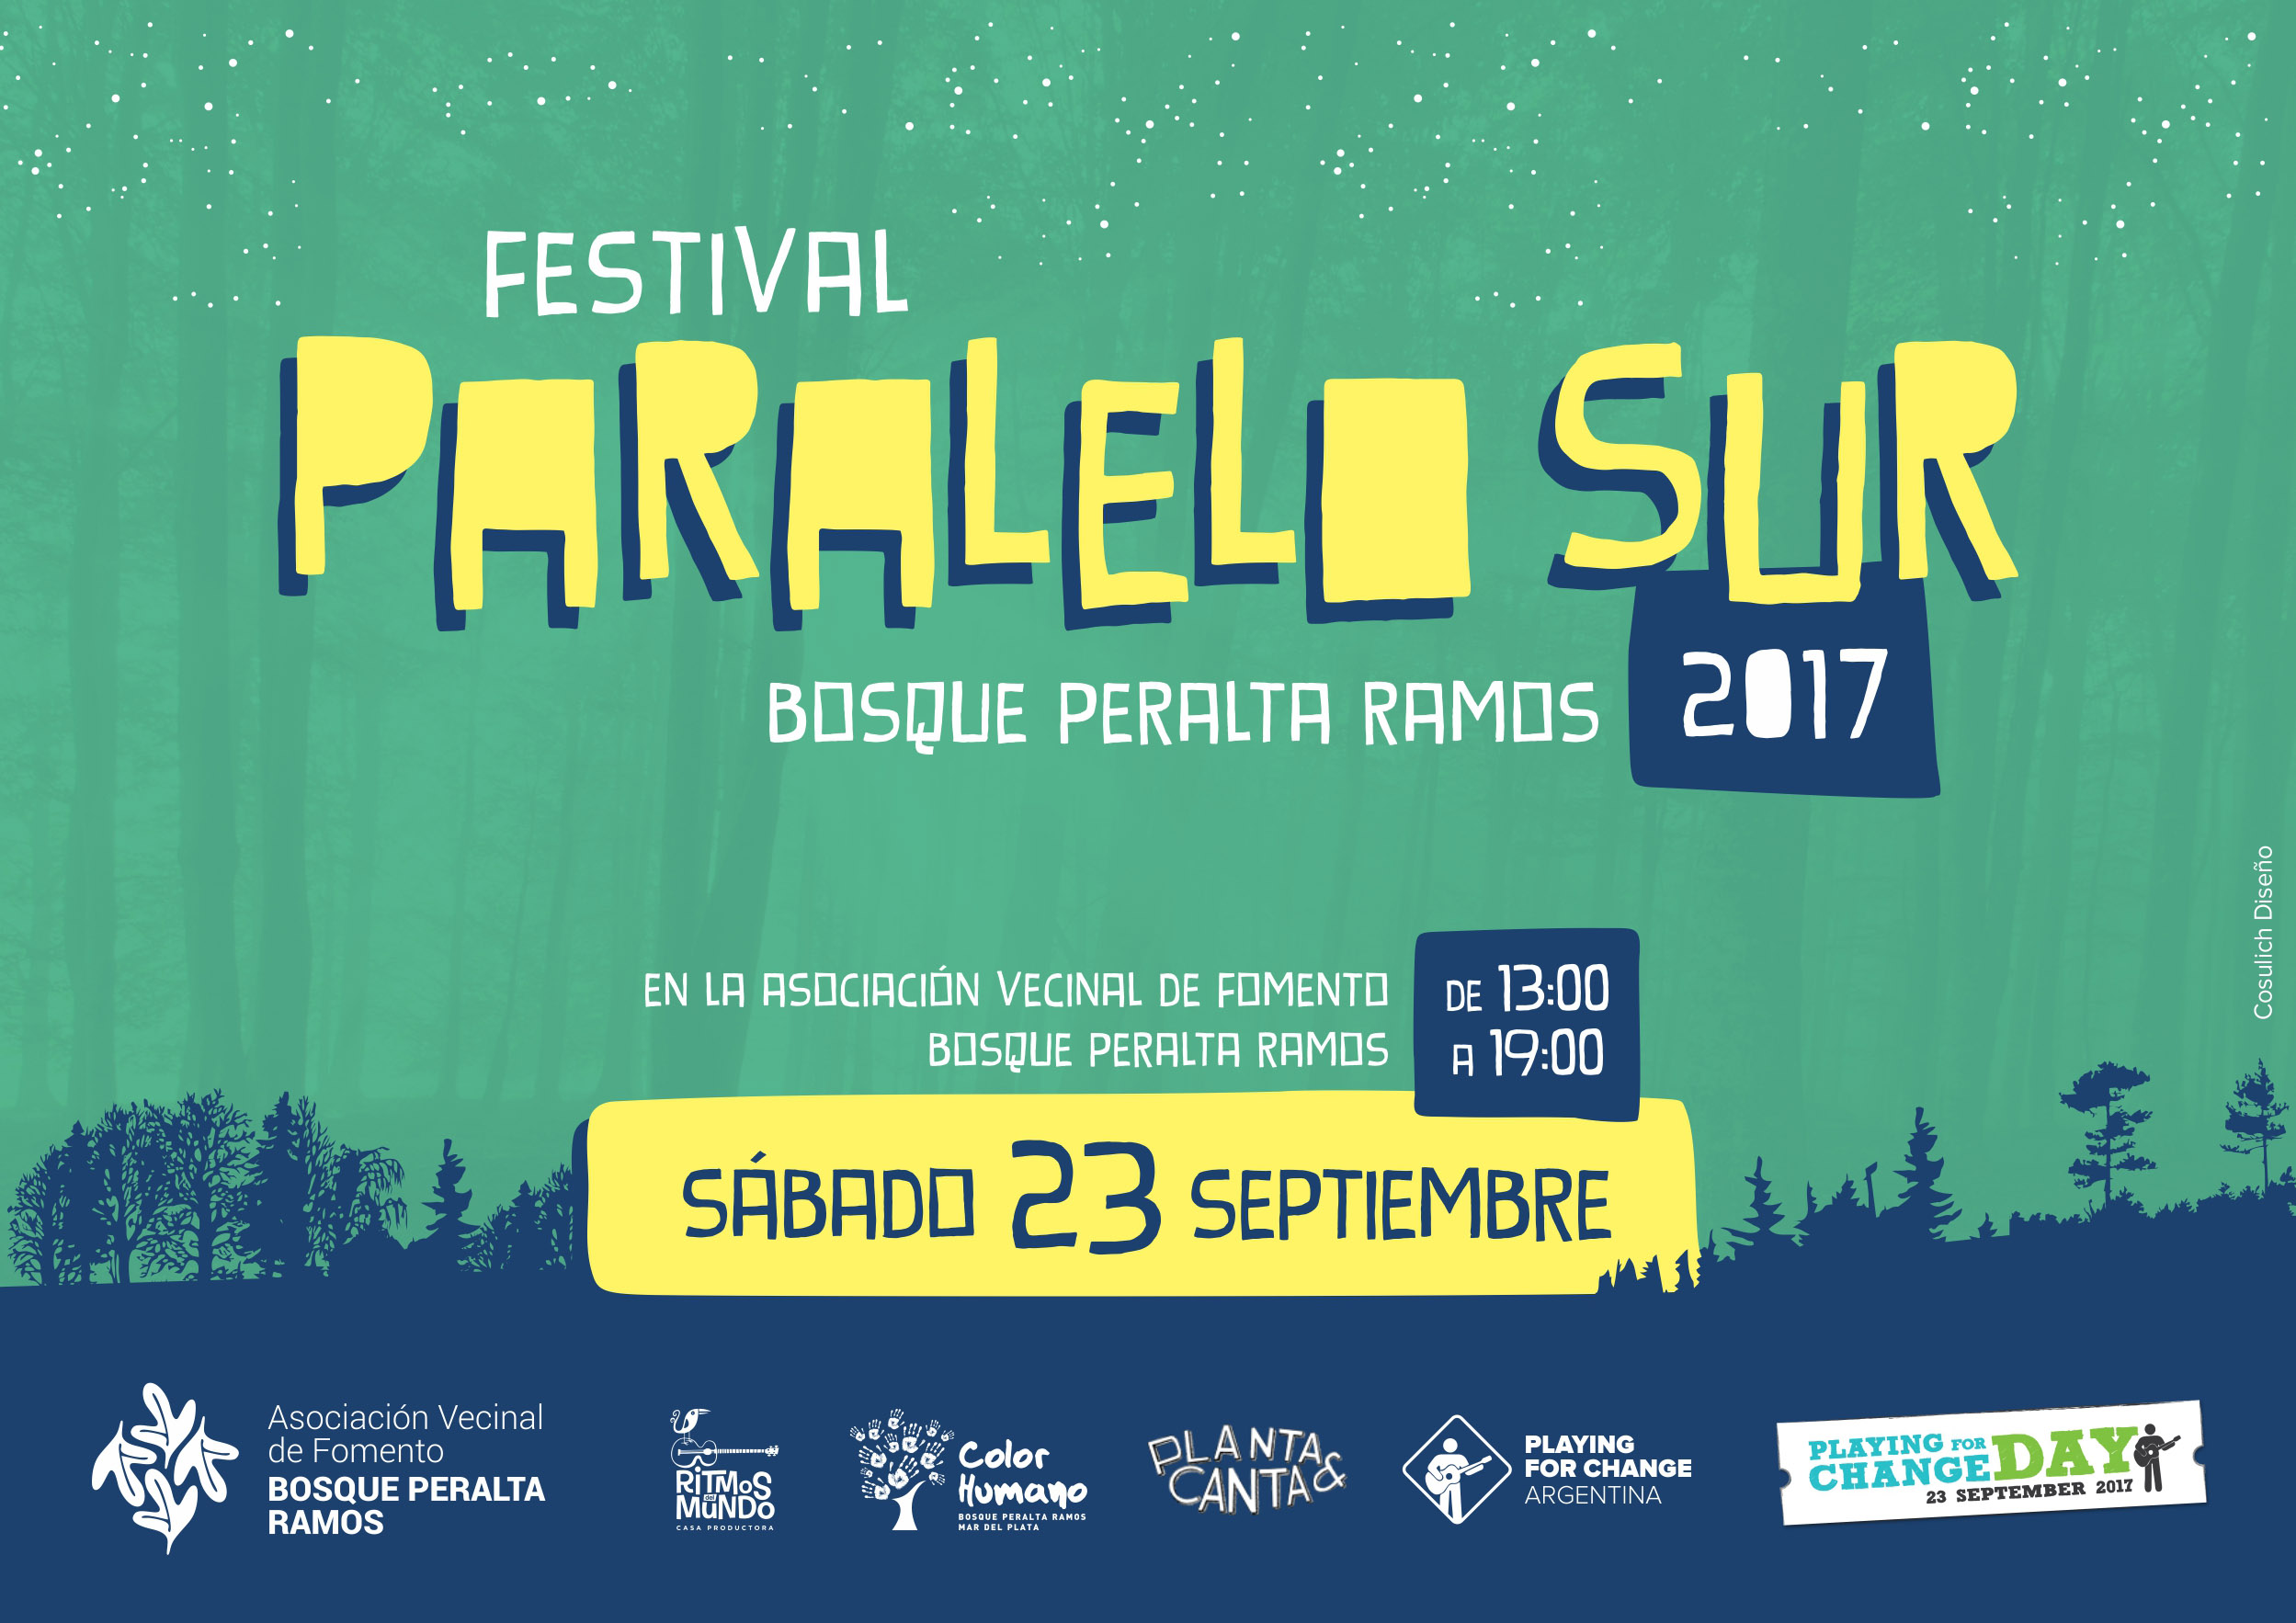 Paralelo Sur - Playing For Change Day |Playing Change Day